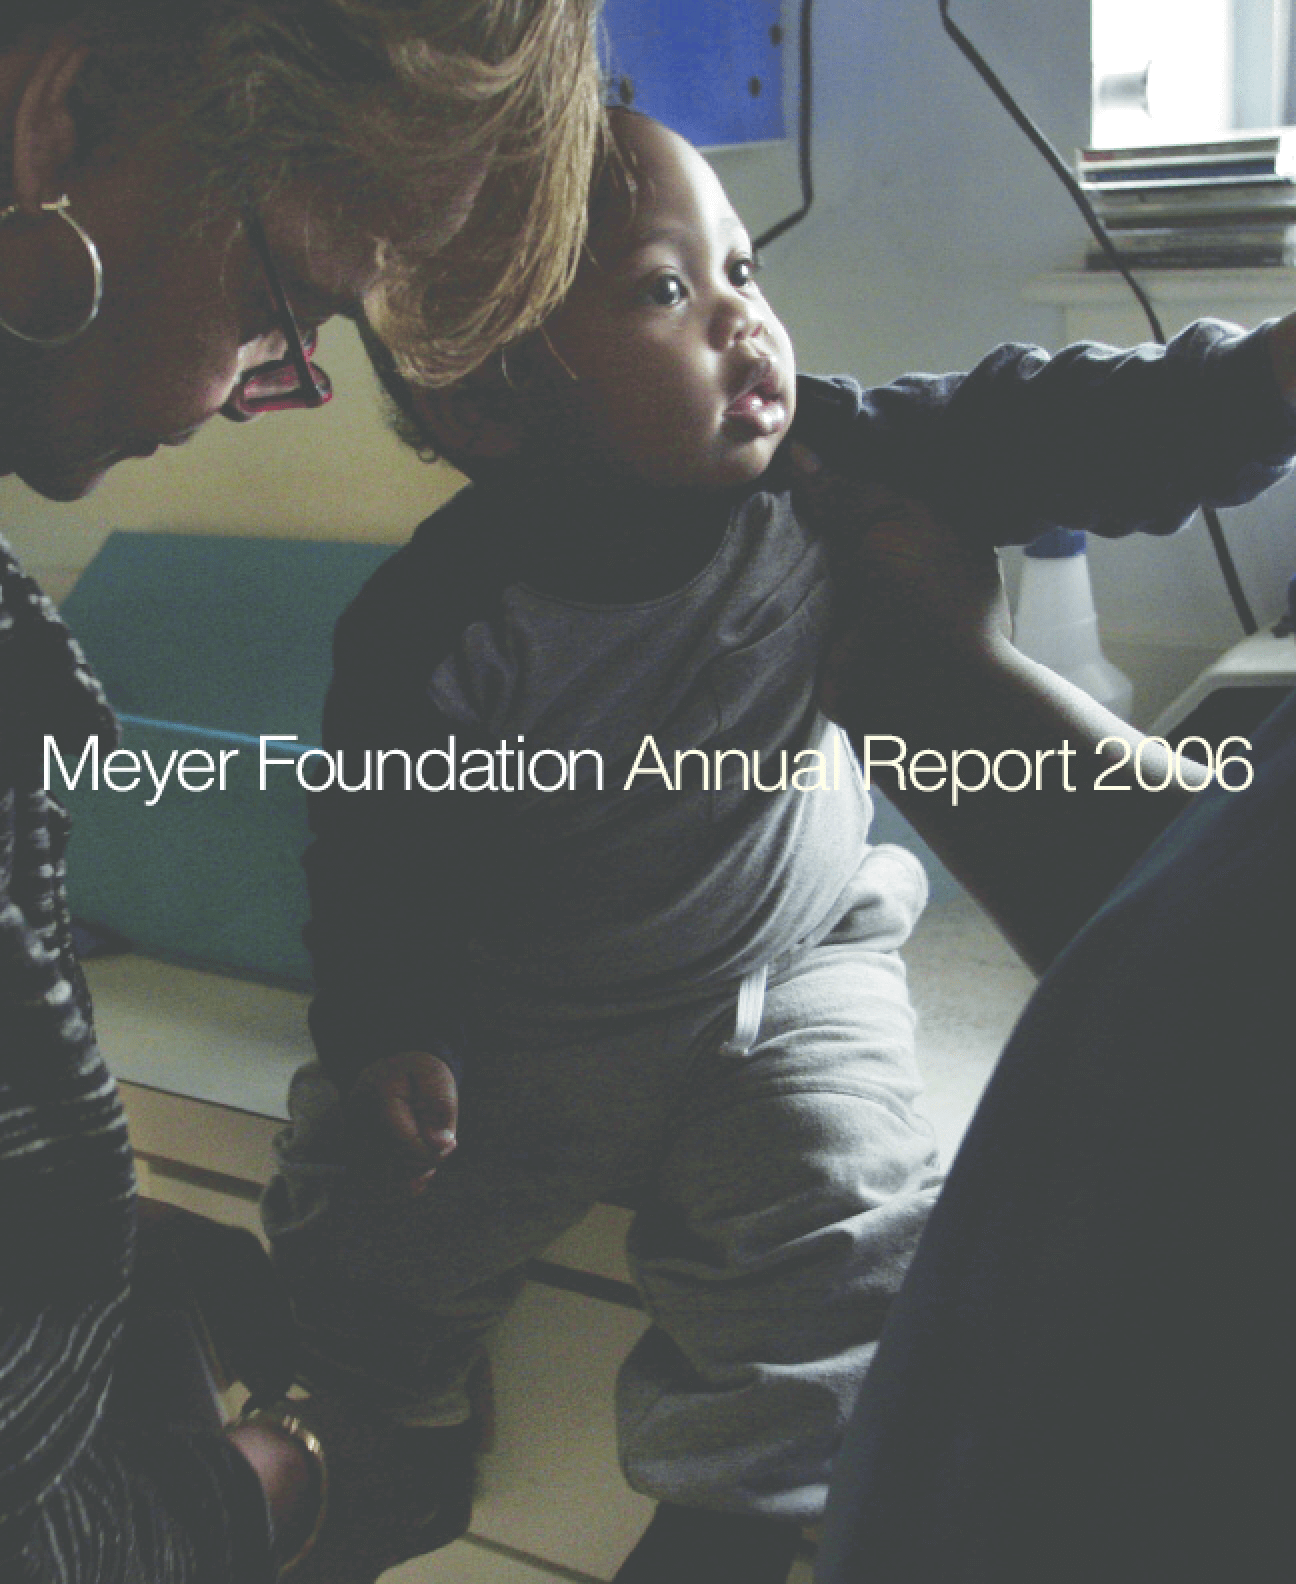 Eugene and Agnes E. Meyer Foundation - 2006 Annual Report: Lifelines